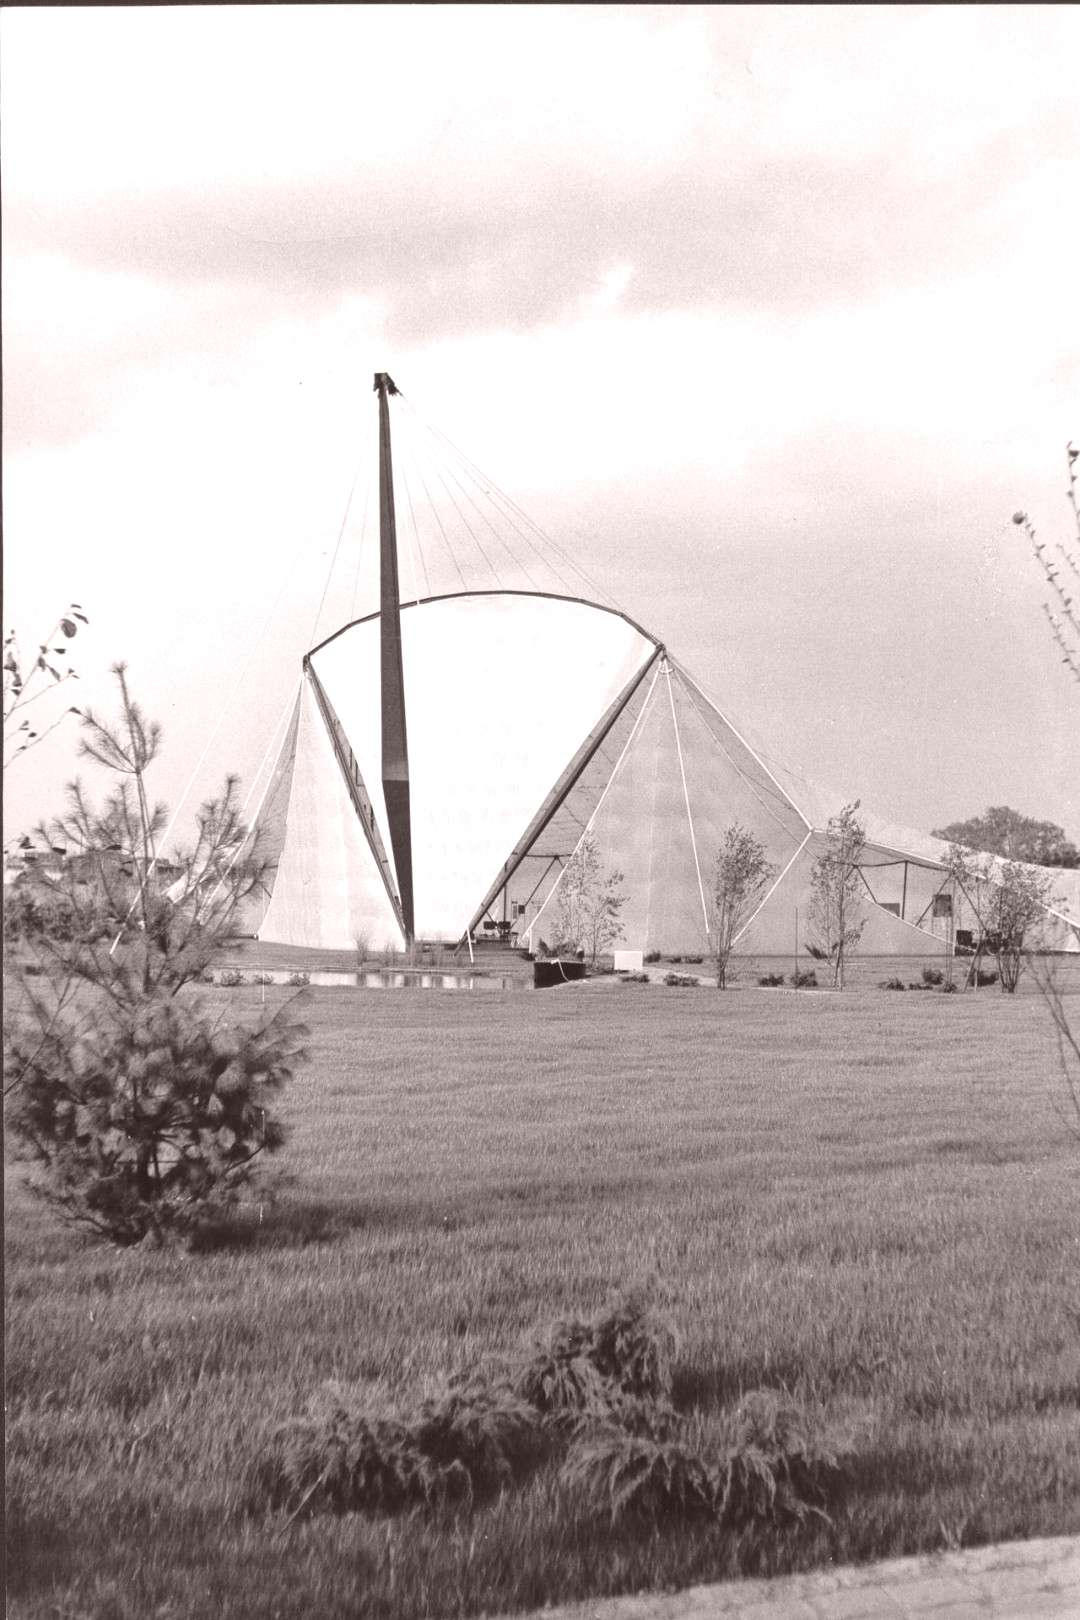 Exhibition Tent (1962) in Wesseling, Germany, by Erich Schelling -